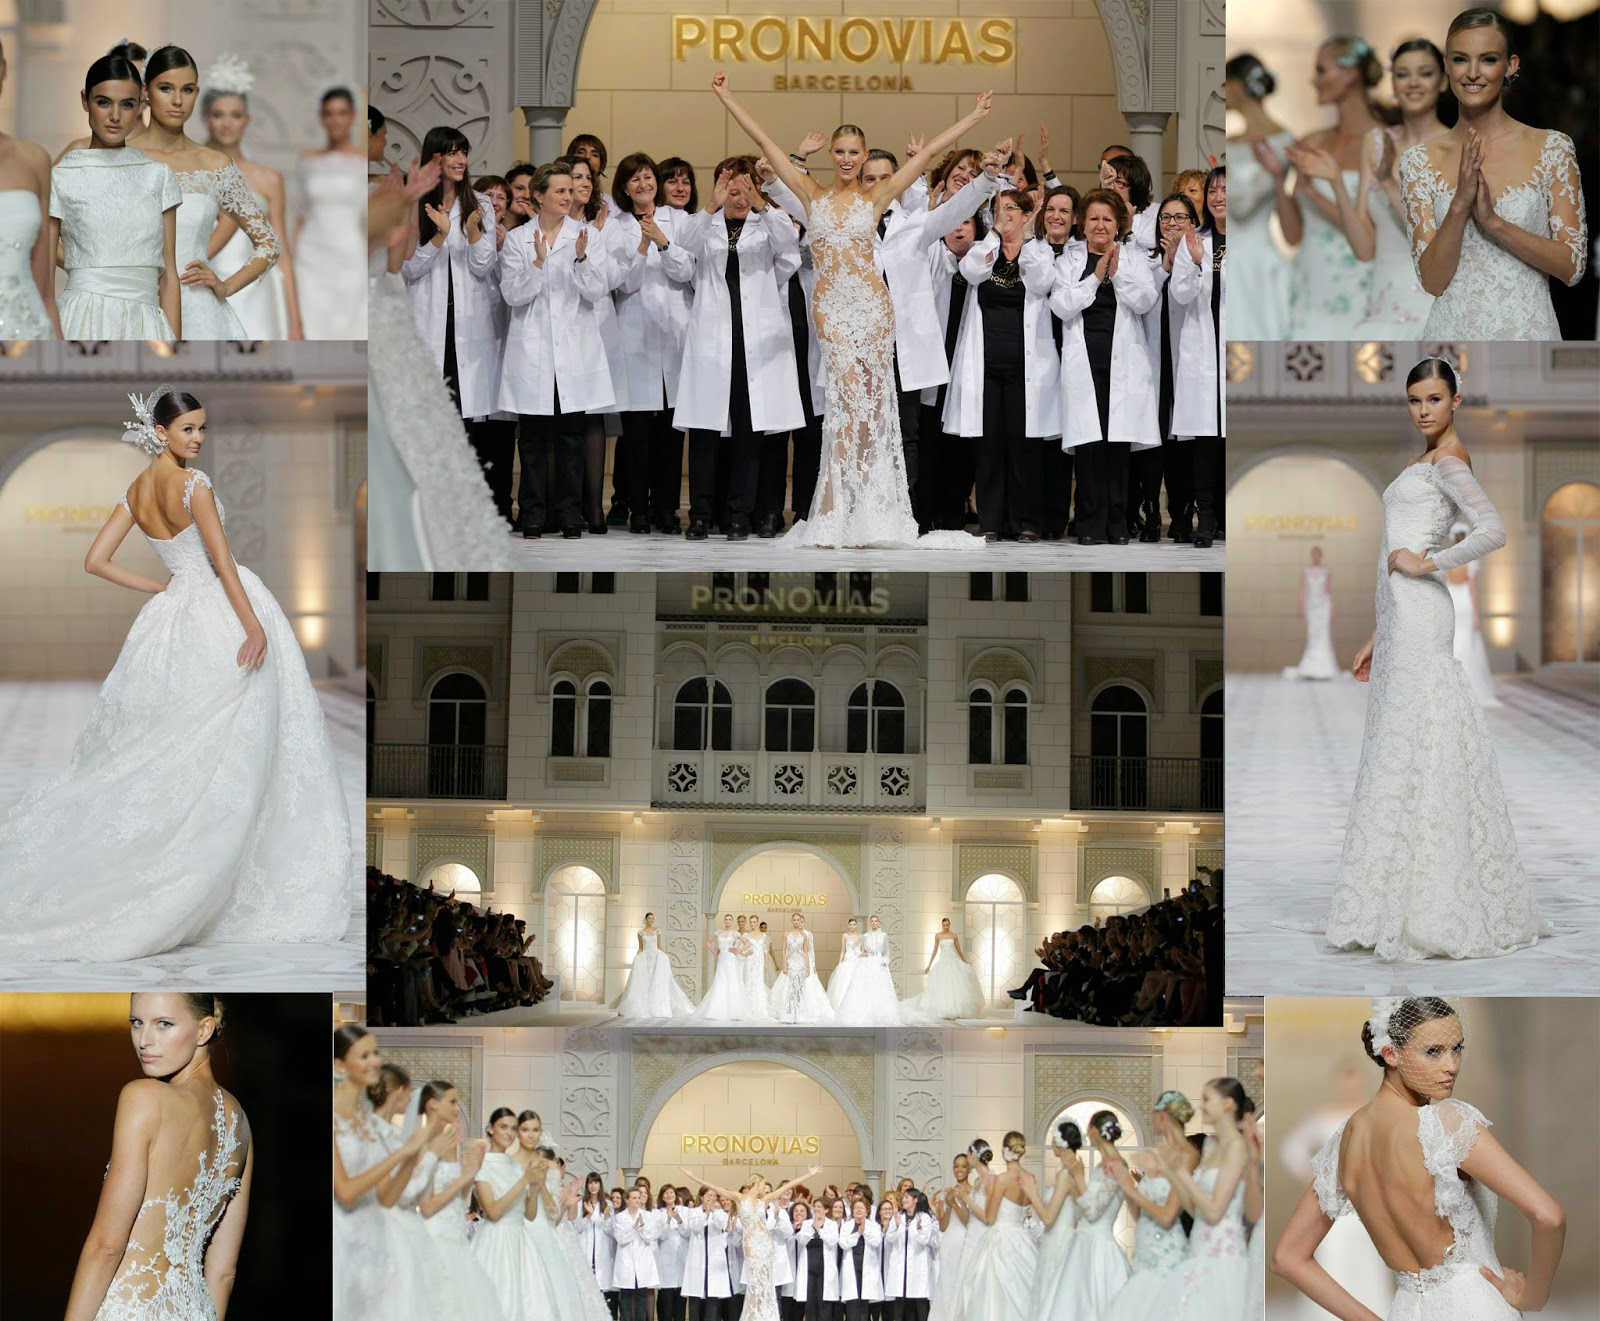 A princess bride couture bridal salon pronovias 2015 for A princess bride couture bridal salon